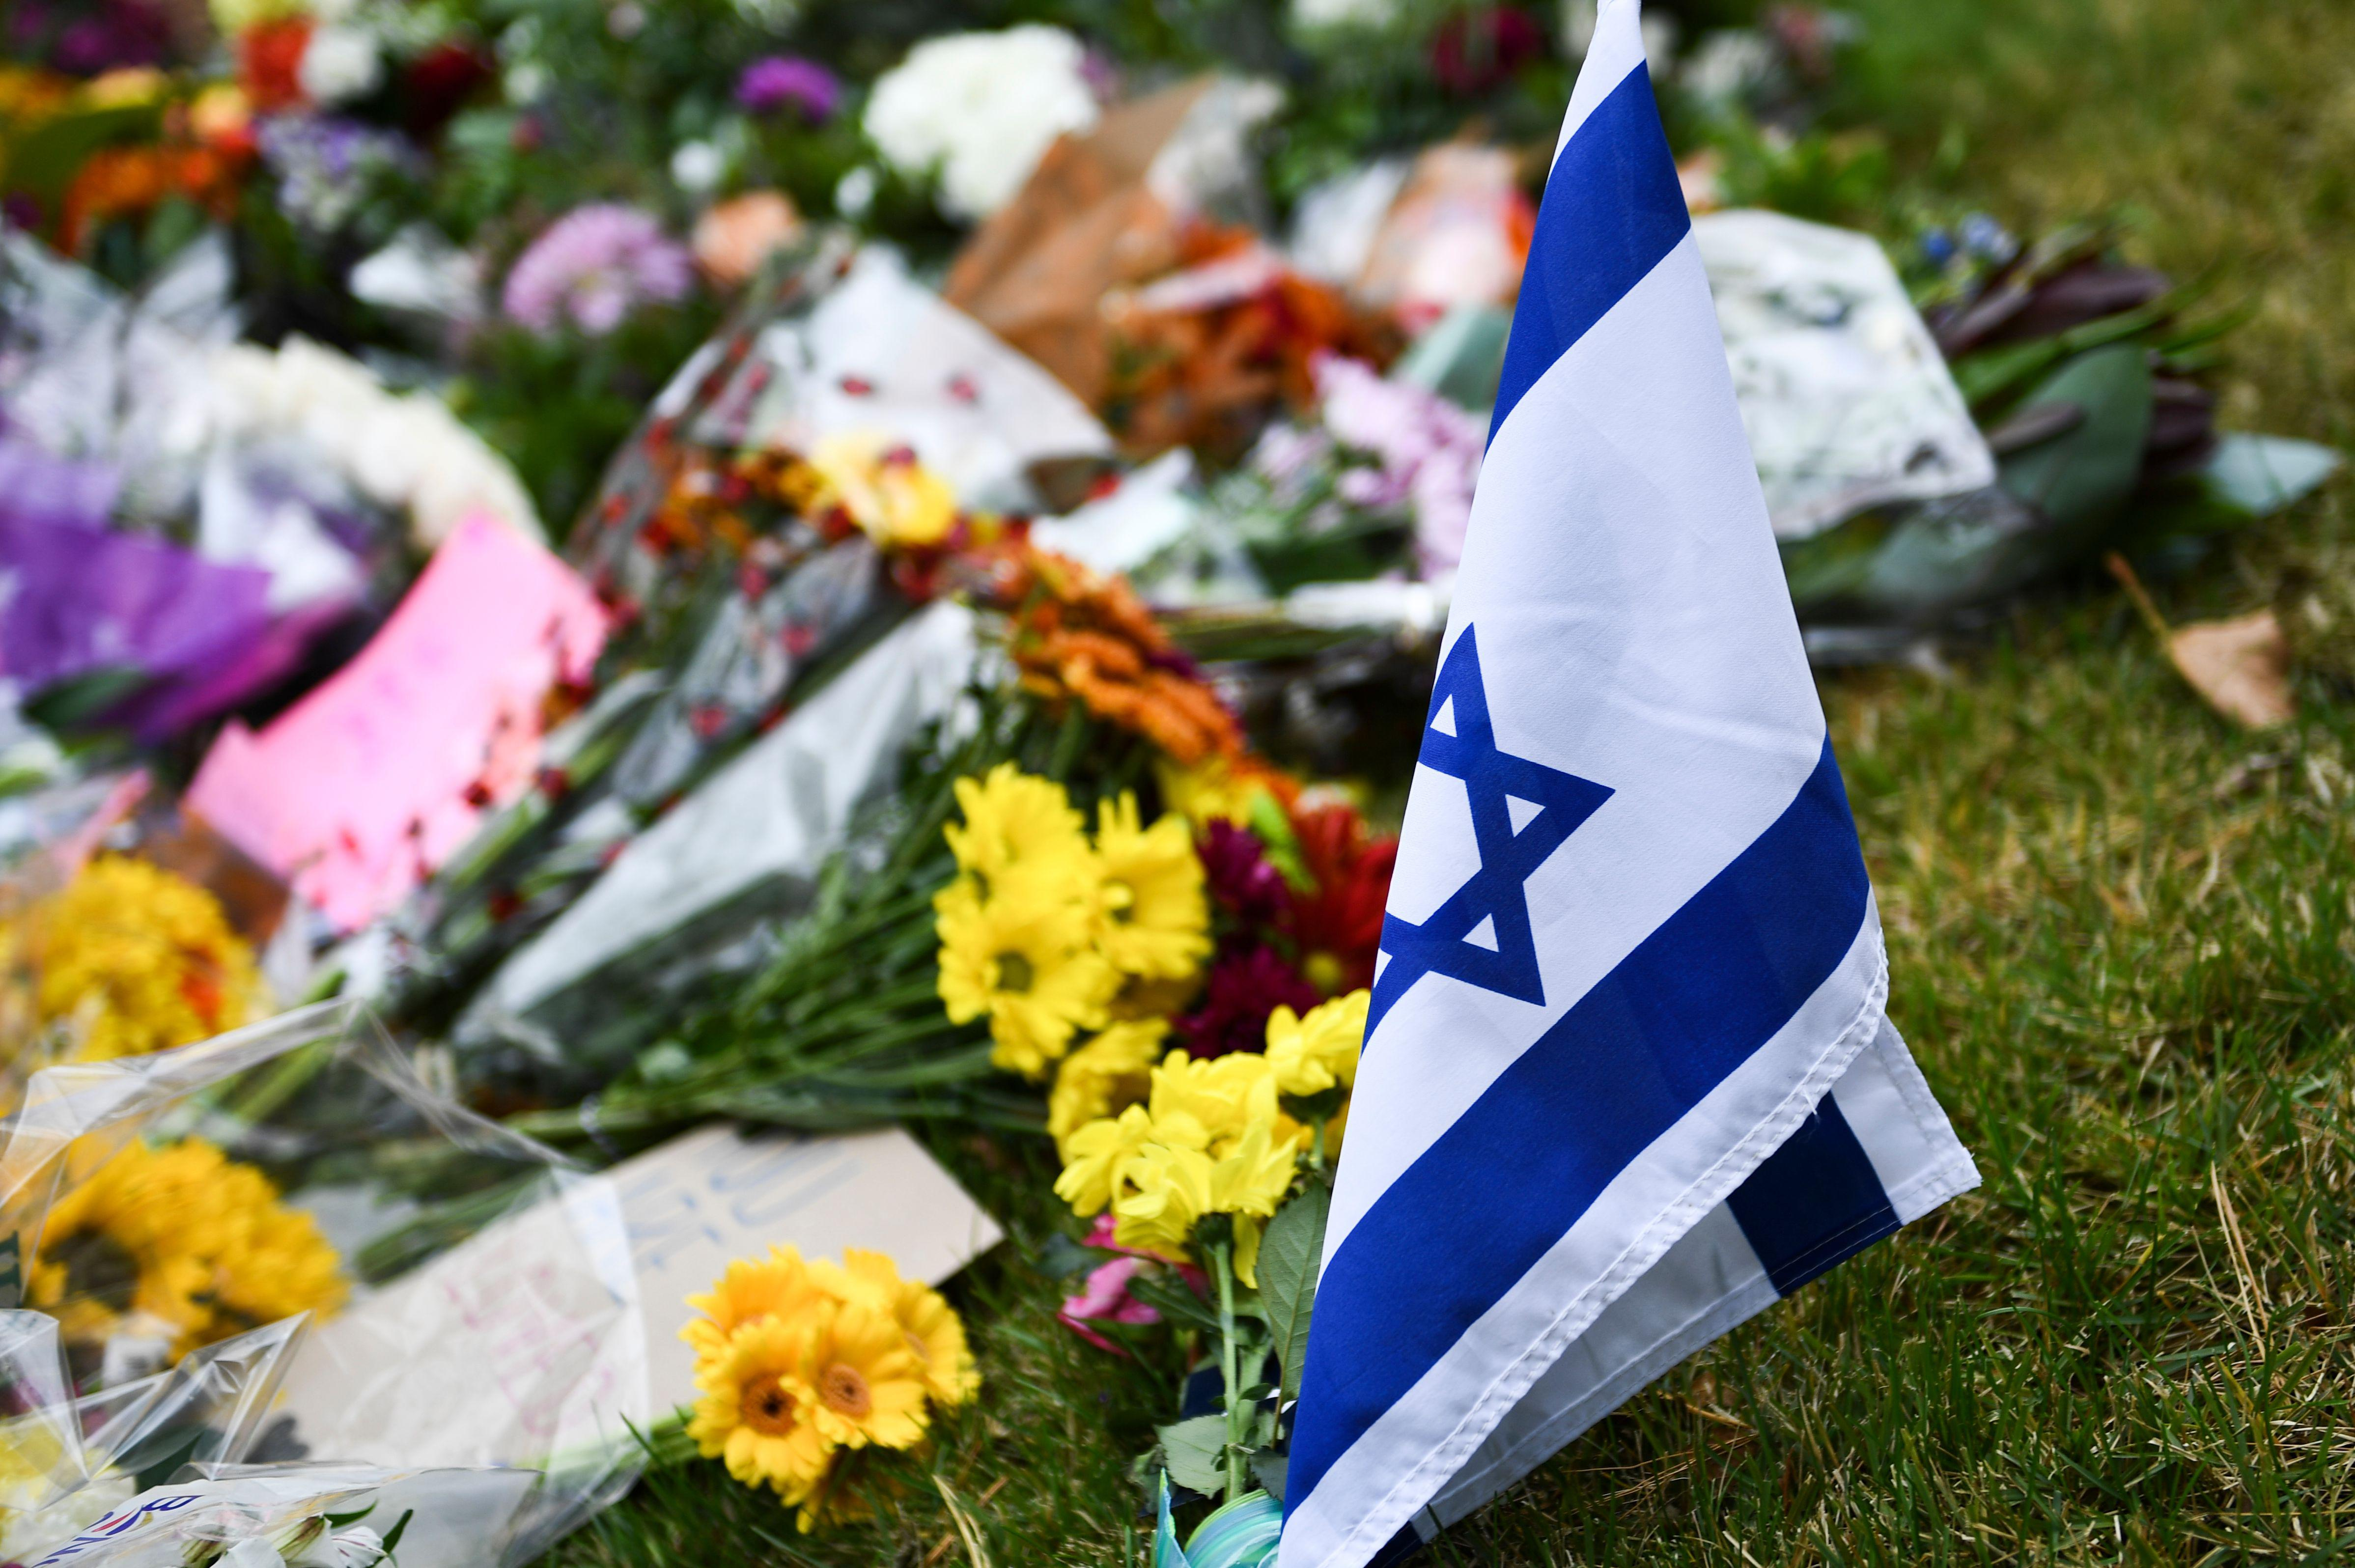 An Israeli national flag is seen at a memorial down the road from the Tree of Life synagogue.